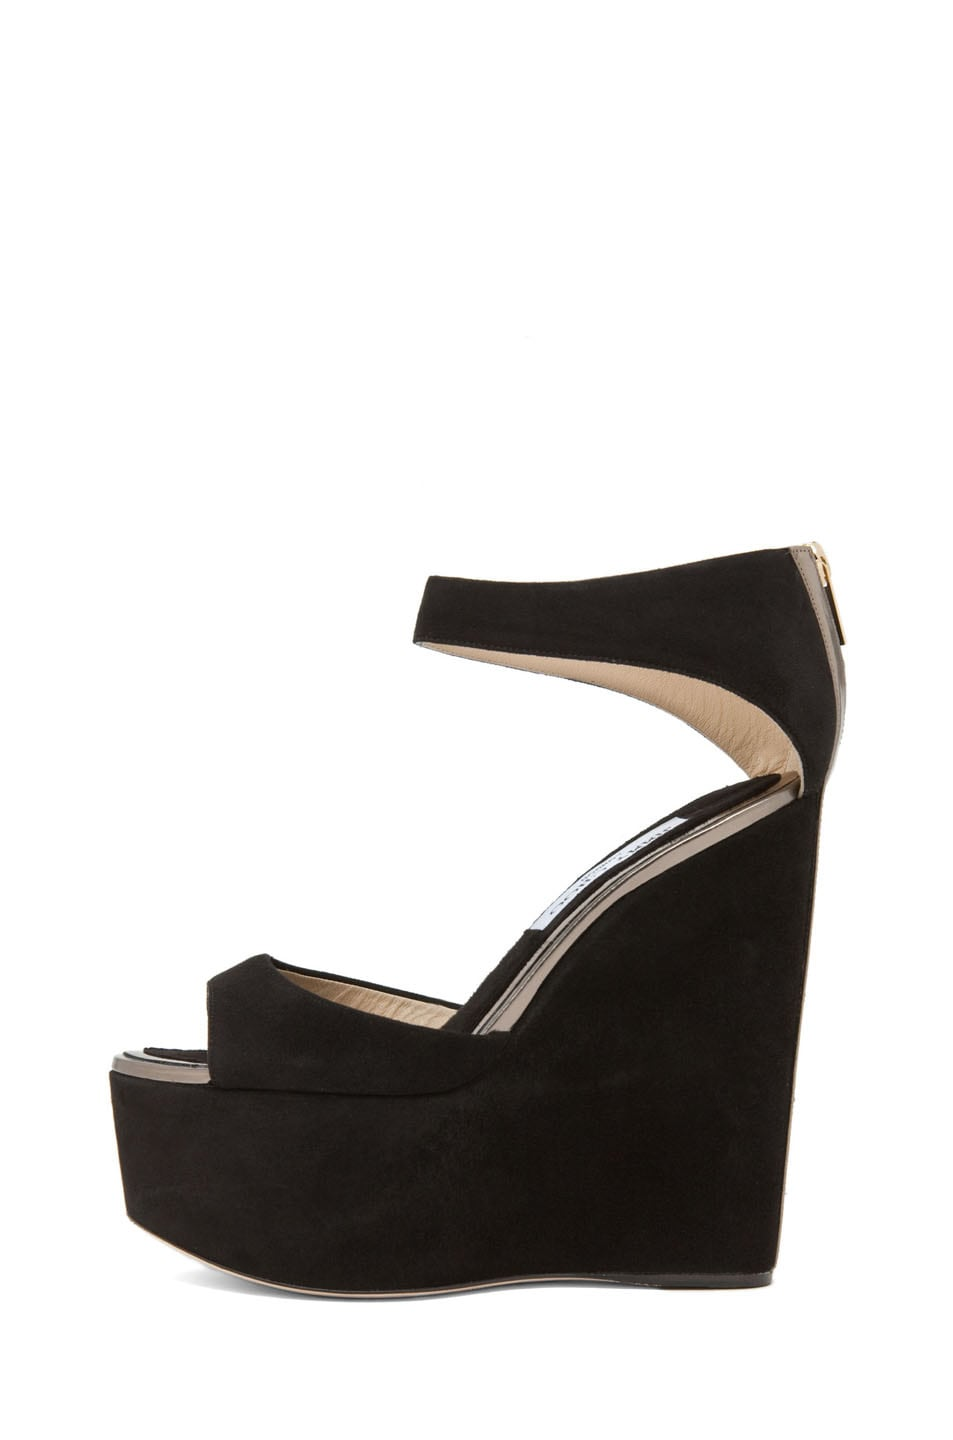 Image 1 of Jimmy Choo Topaz Wedge Sandal in Black